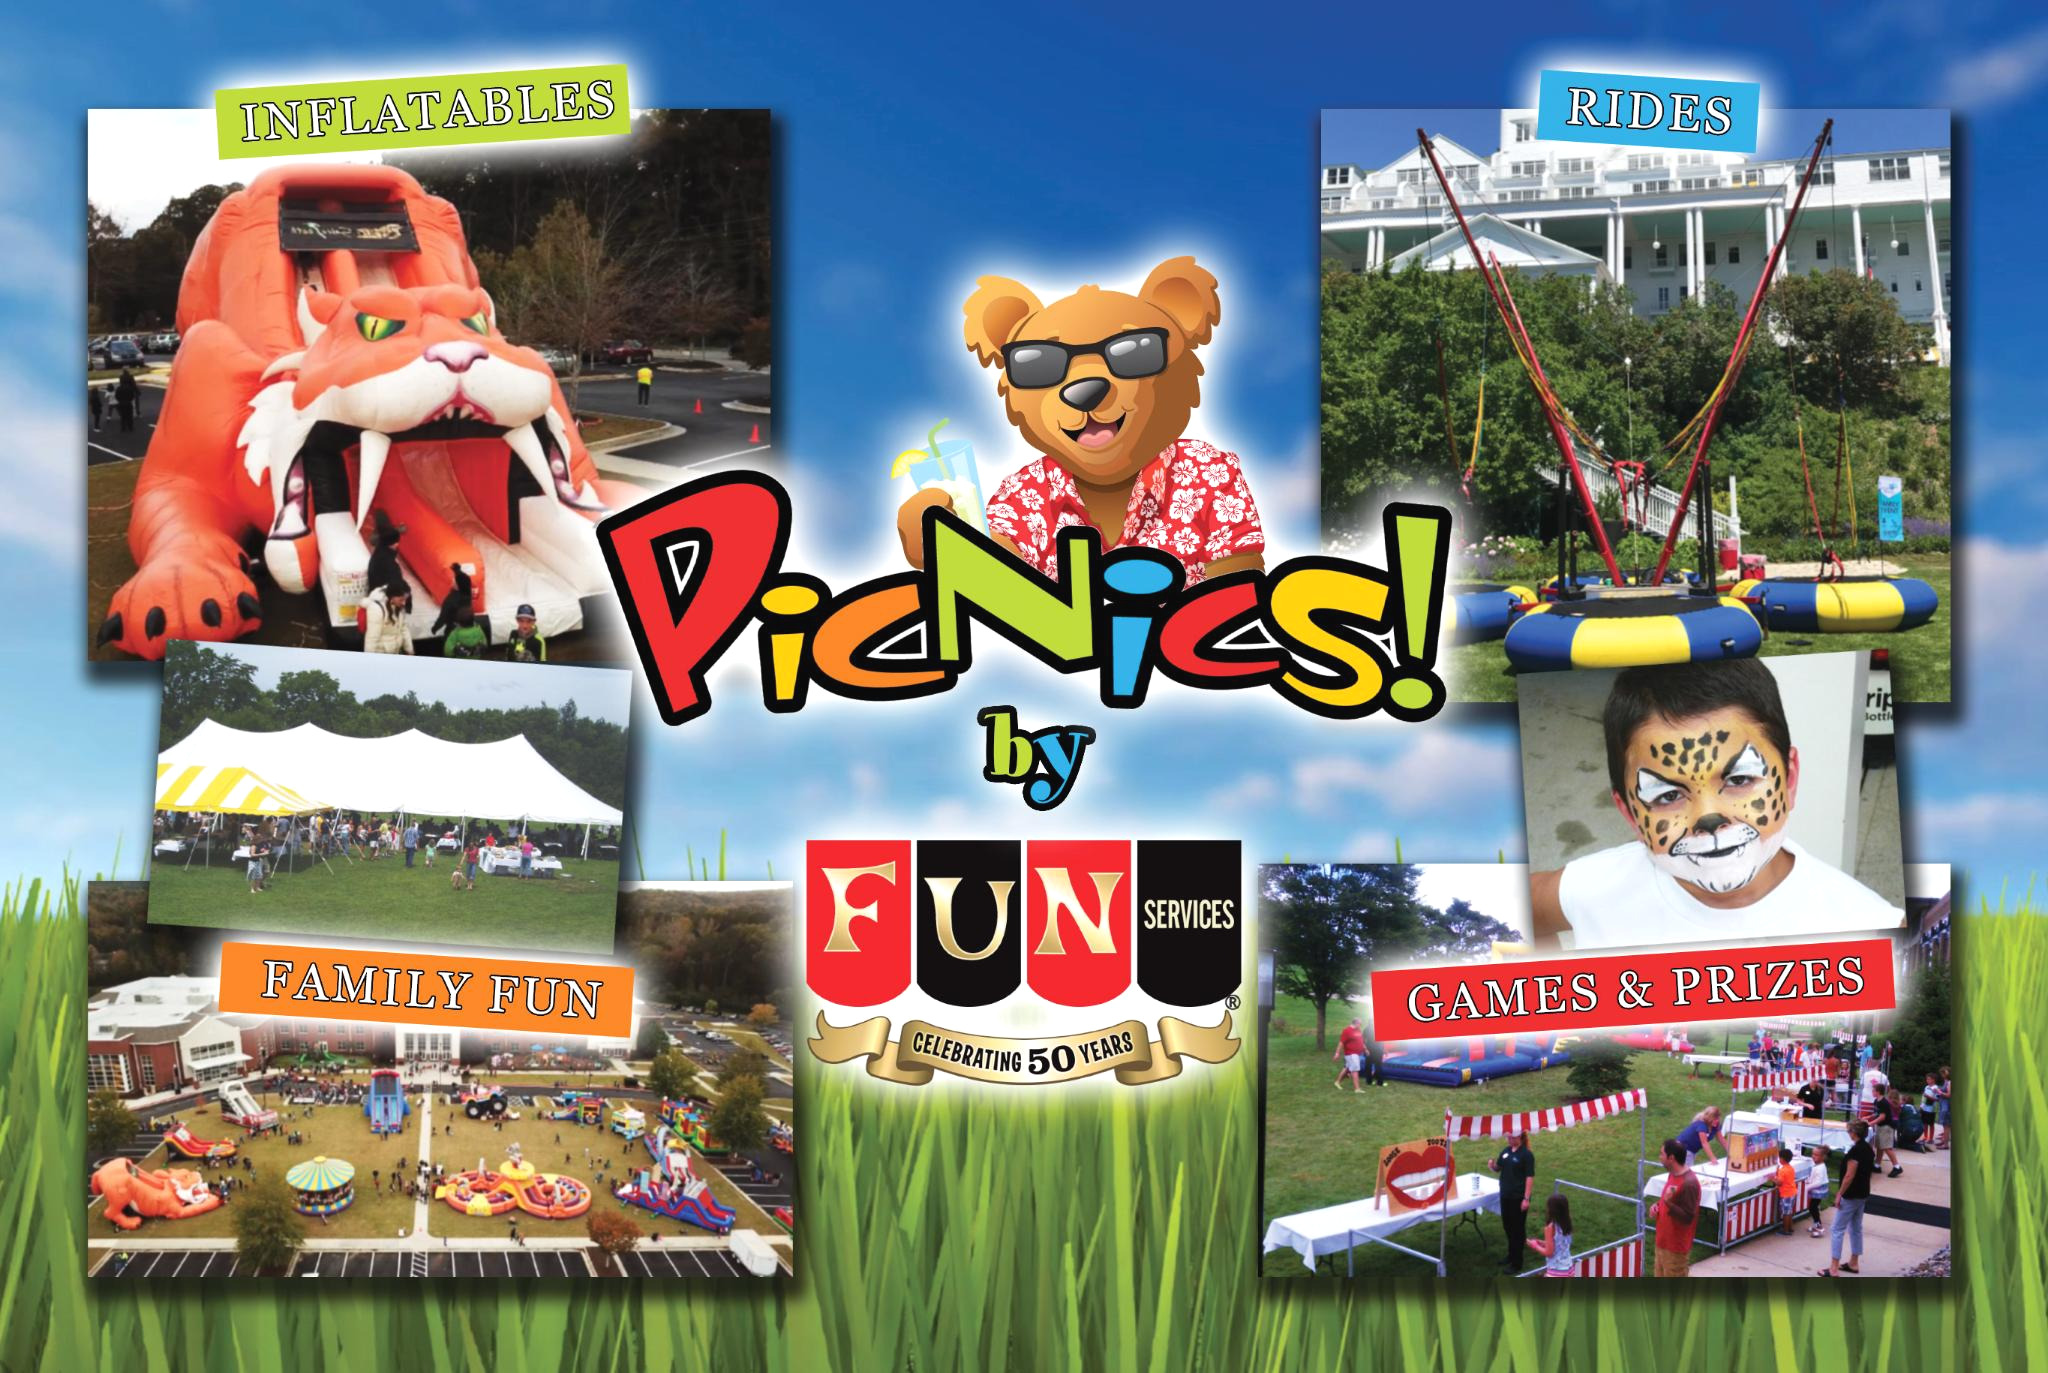 company picnics, family fun, inflatables, rides, corporate events